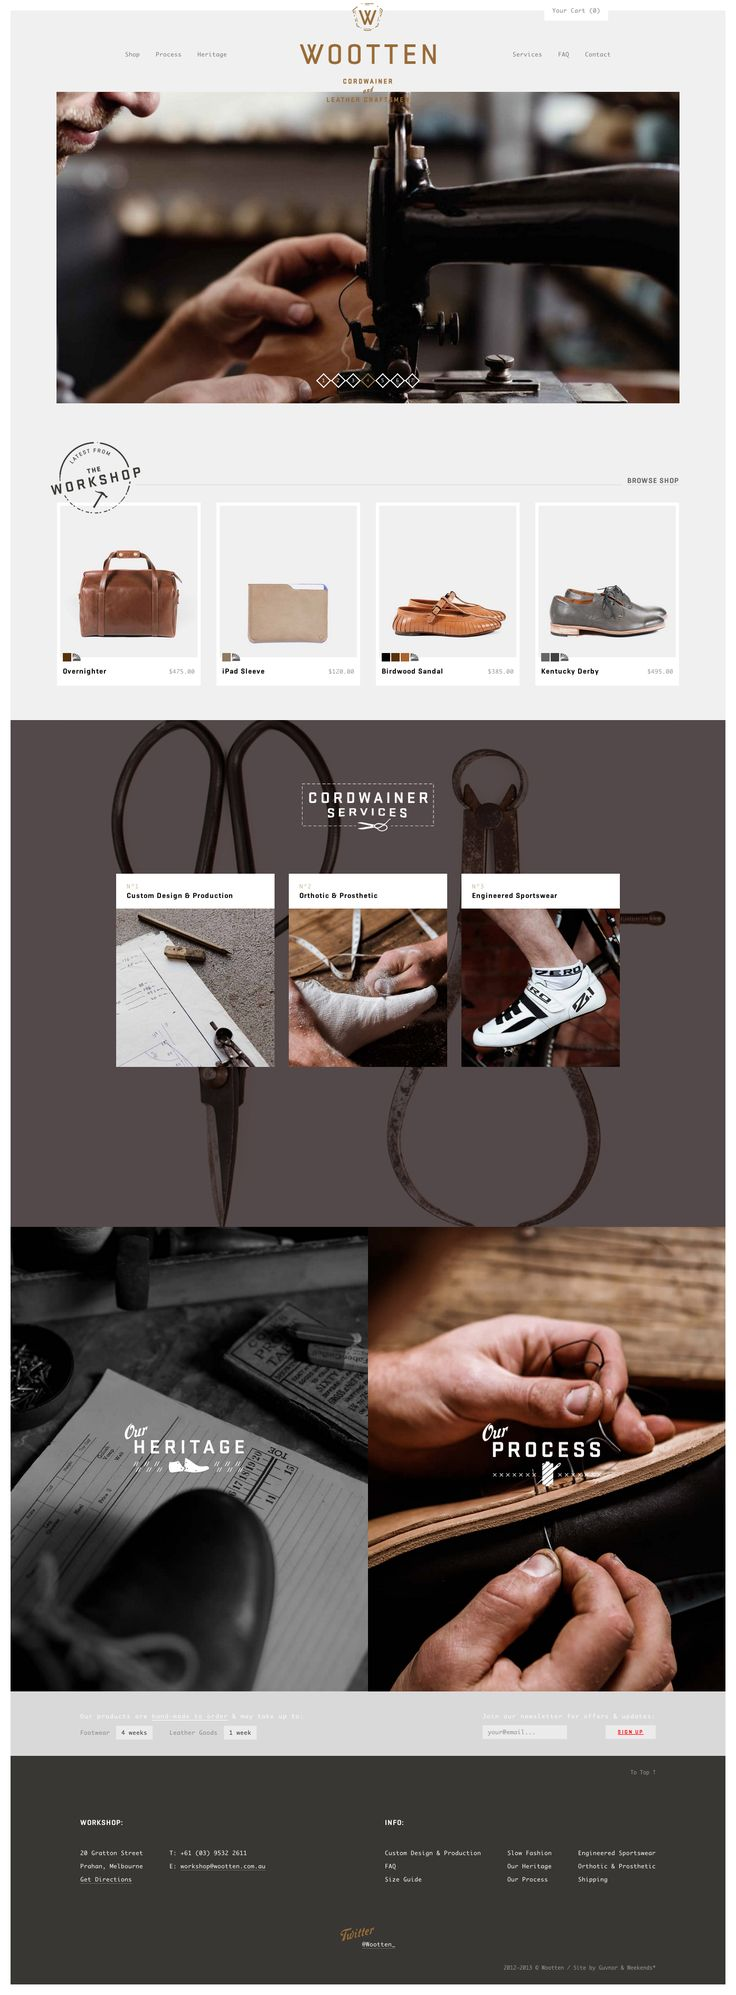 http://wootten.com.au/ |  The color scheme of brown to black in this website ties together nicely that theme of leather and making of high-quality, natural, hand-made goods. Even though they join together pictures, the pictures don't clash because their core color schemes are the same.